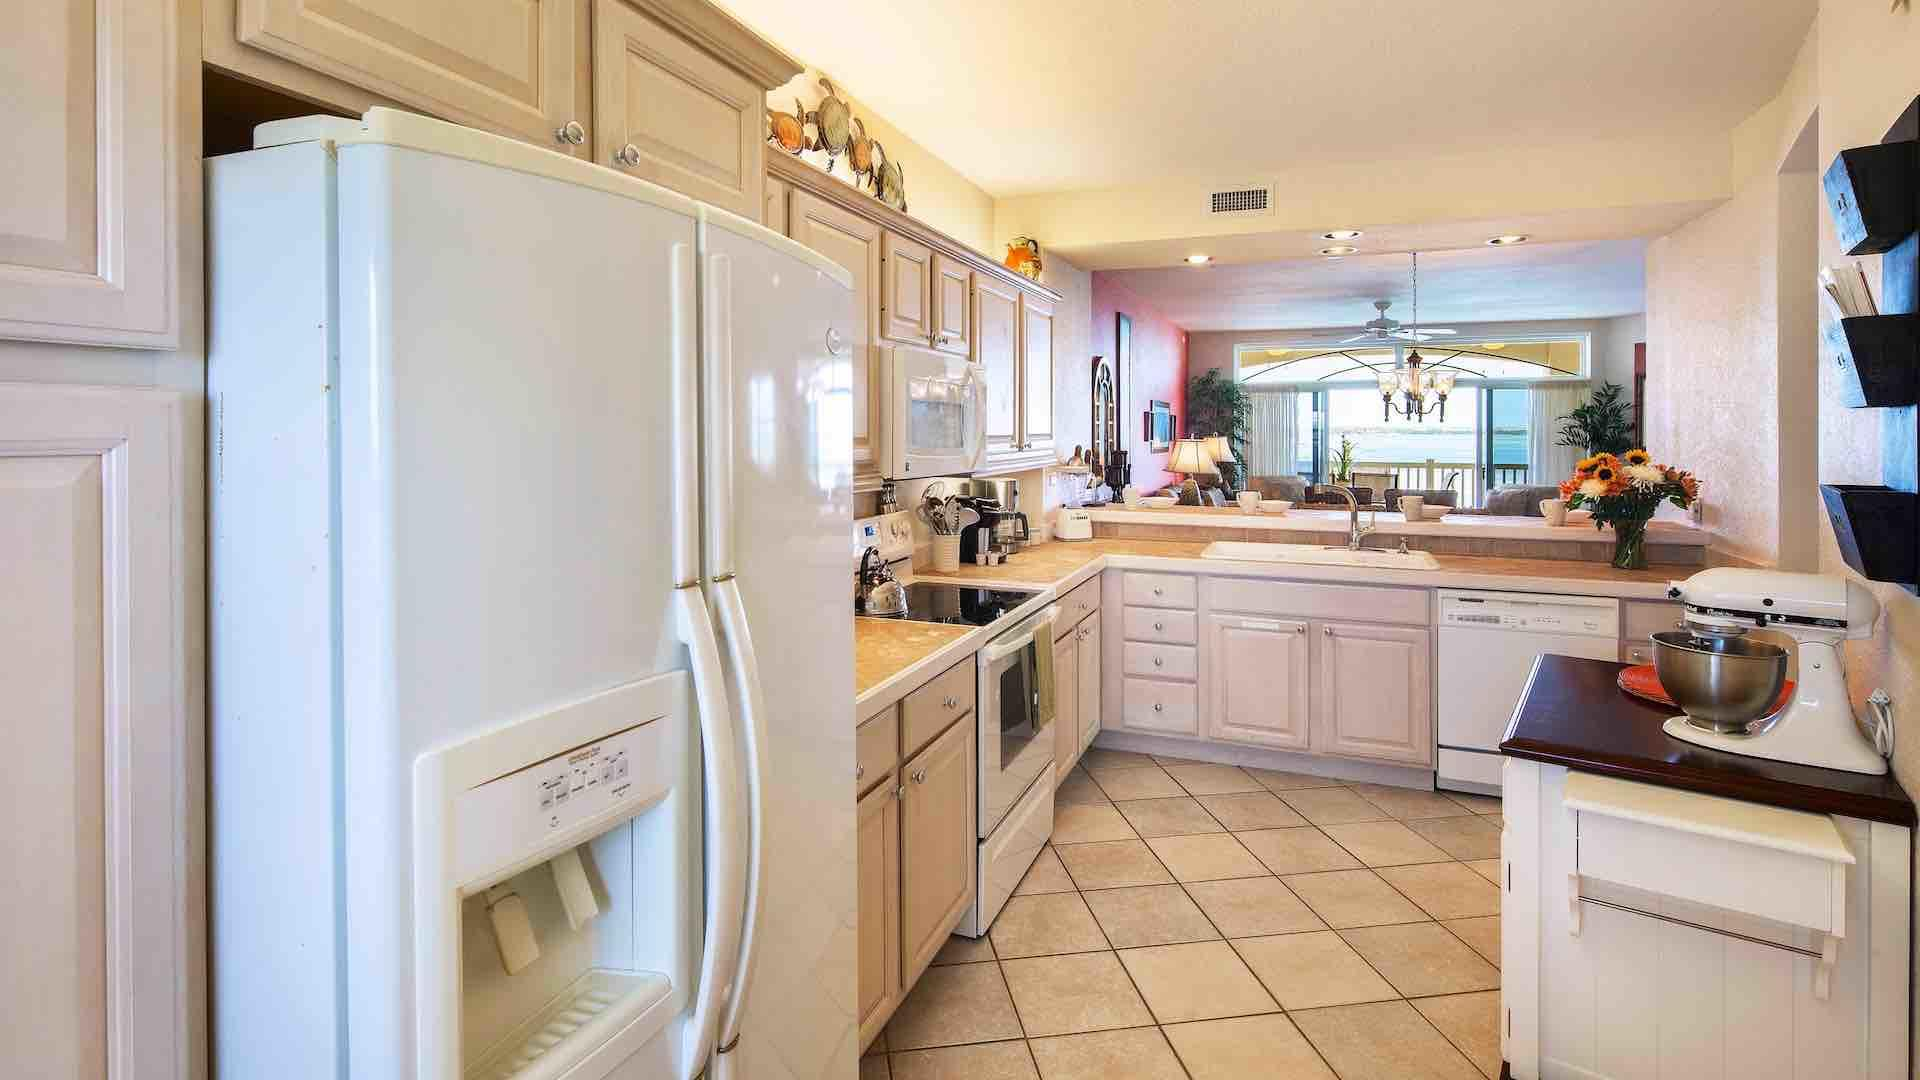 The kitchen has top of the line appliances and plenty of cabinet and counter space...